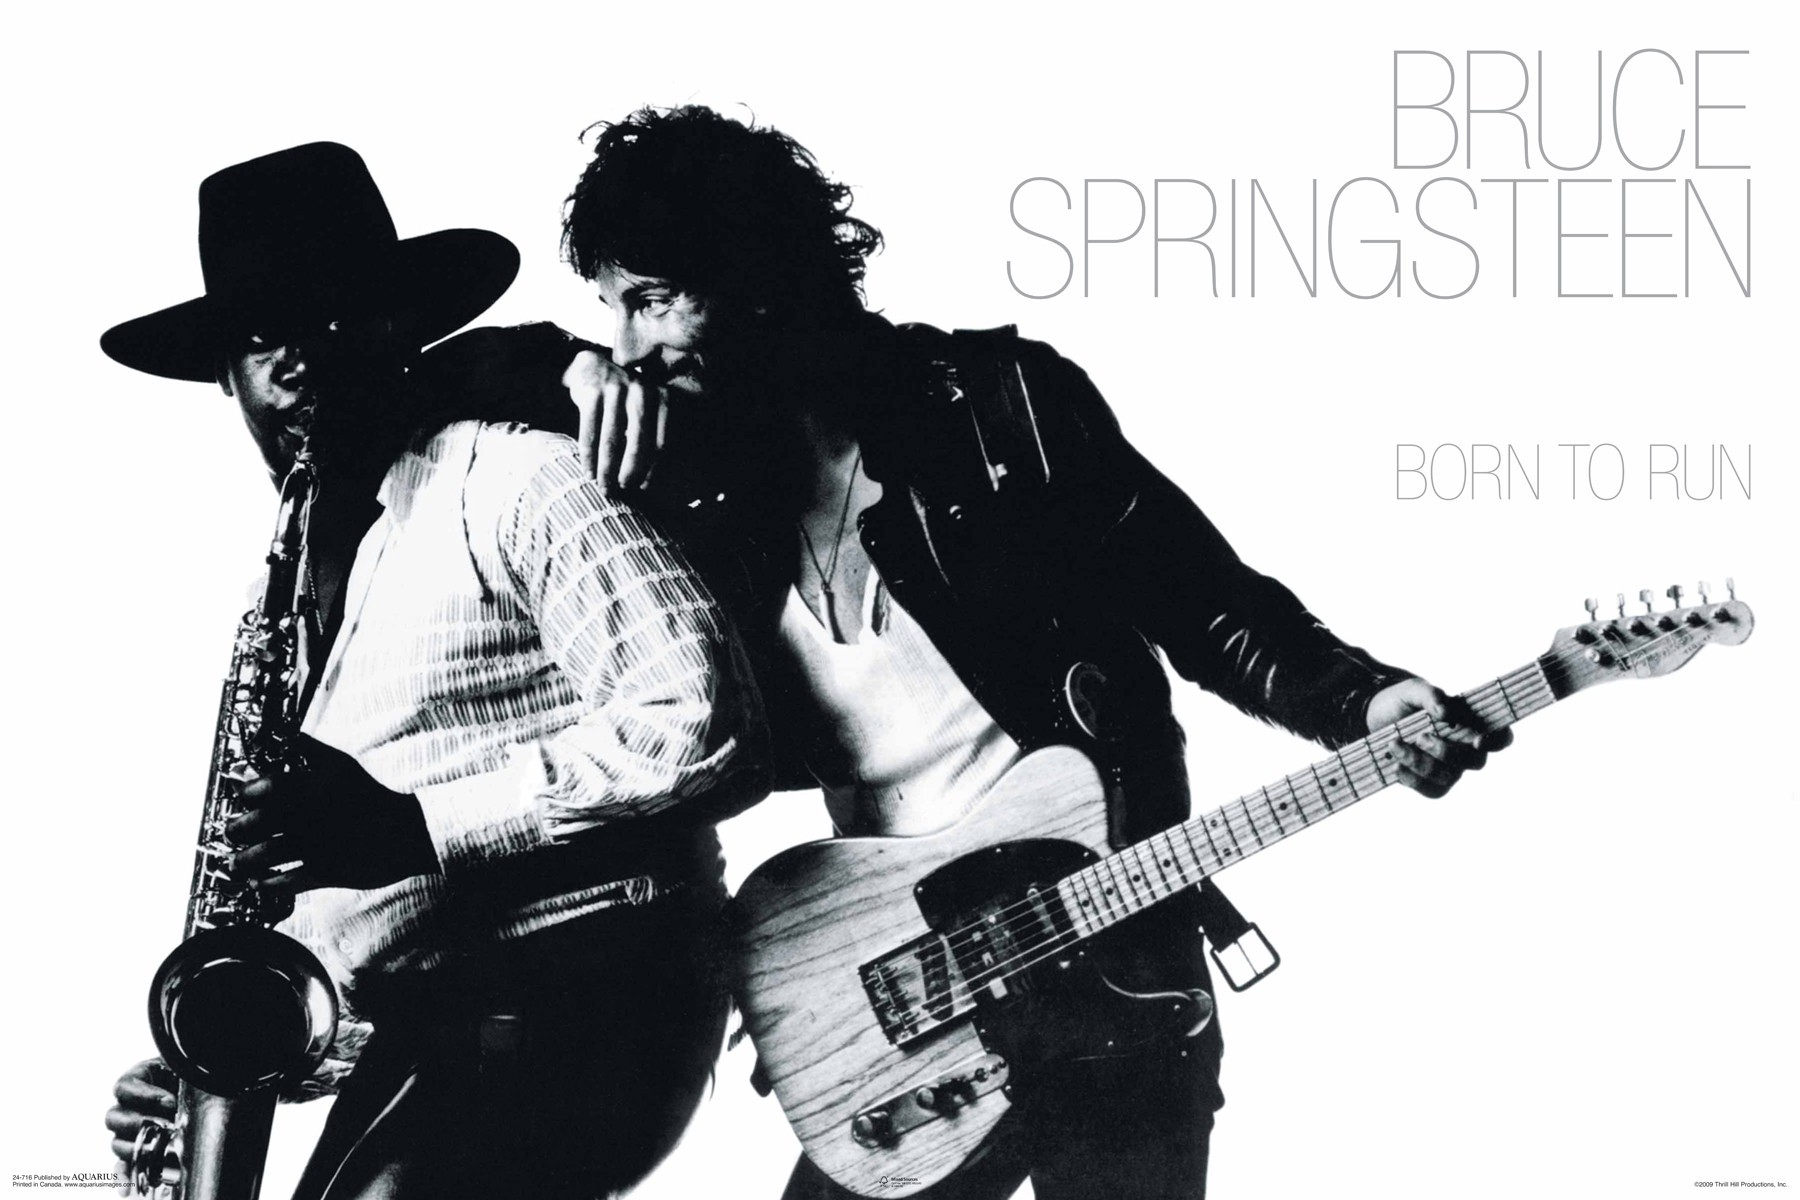 Born to Run': How an Album Cover Celebrated Bruce Springsteen's Band of  Brothers | by David Deal | Festival Peak